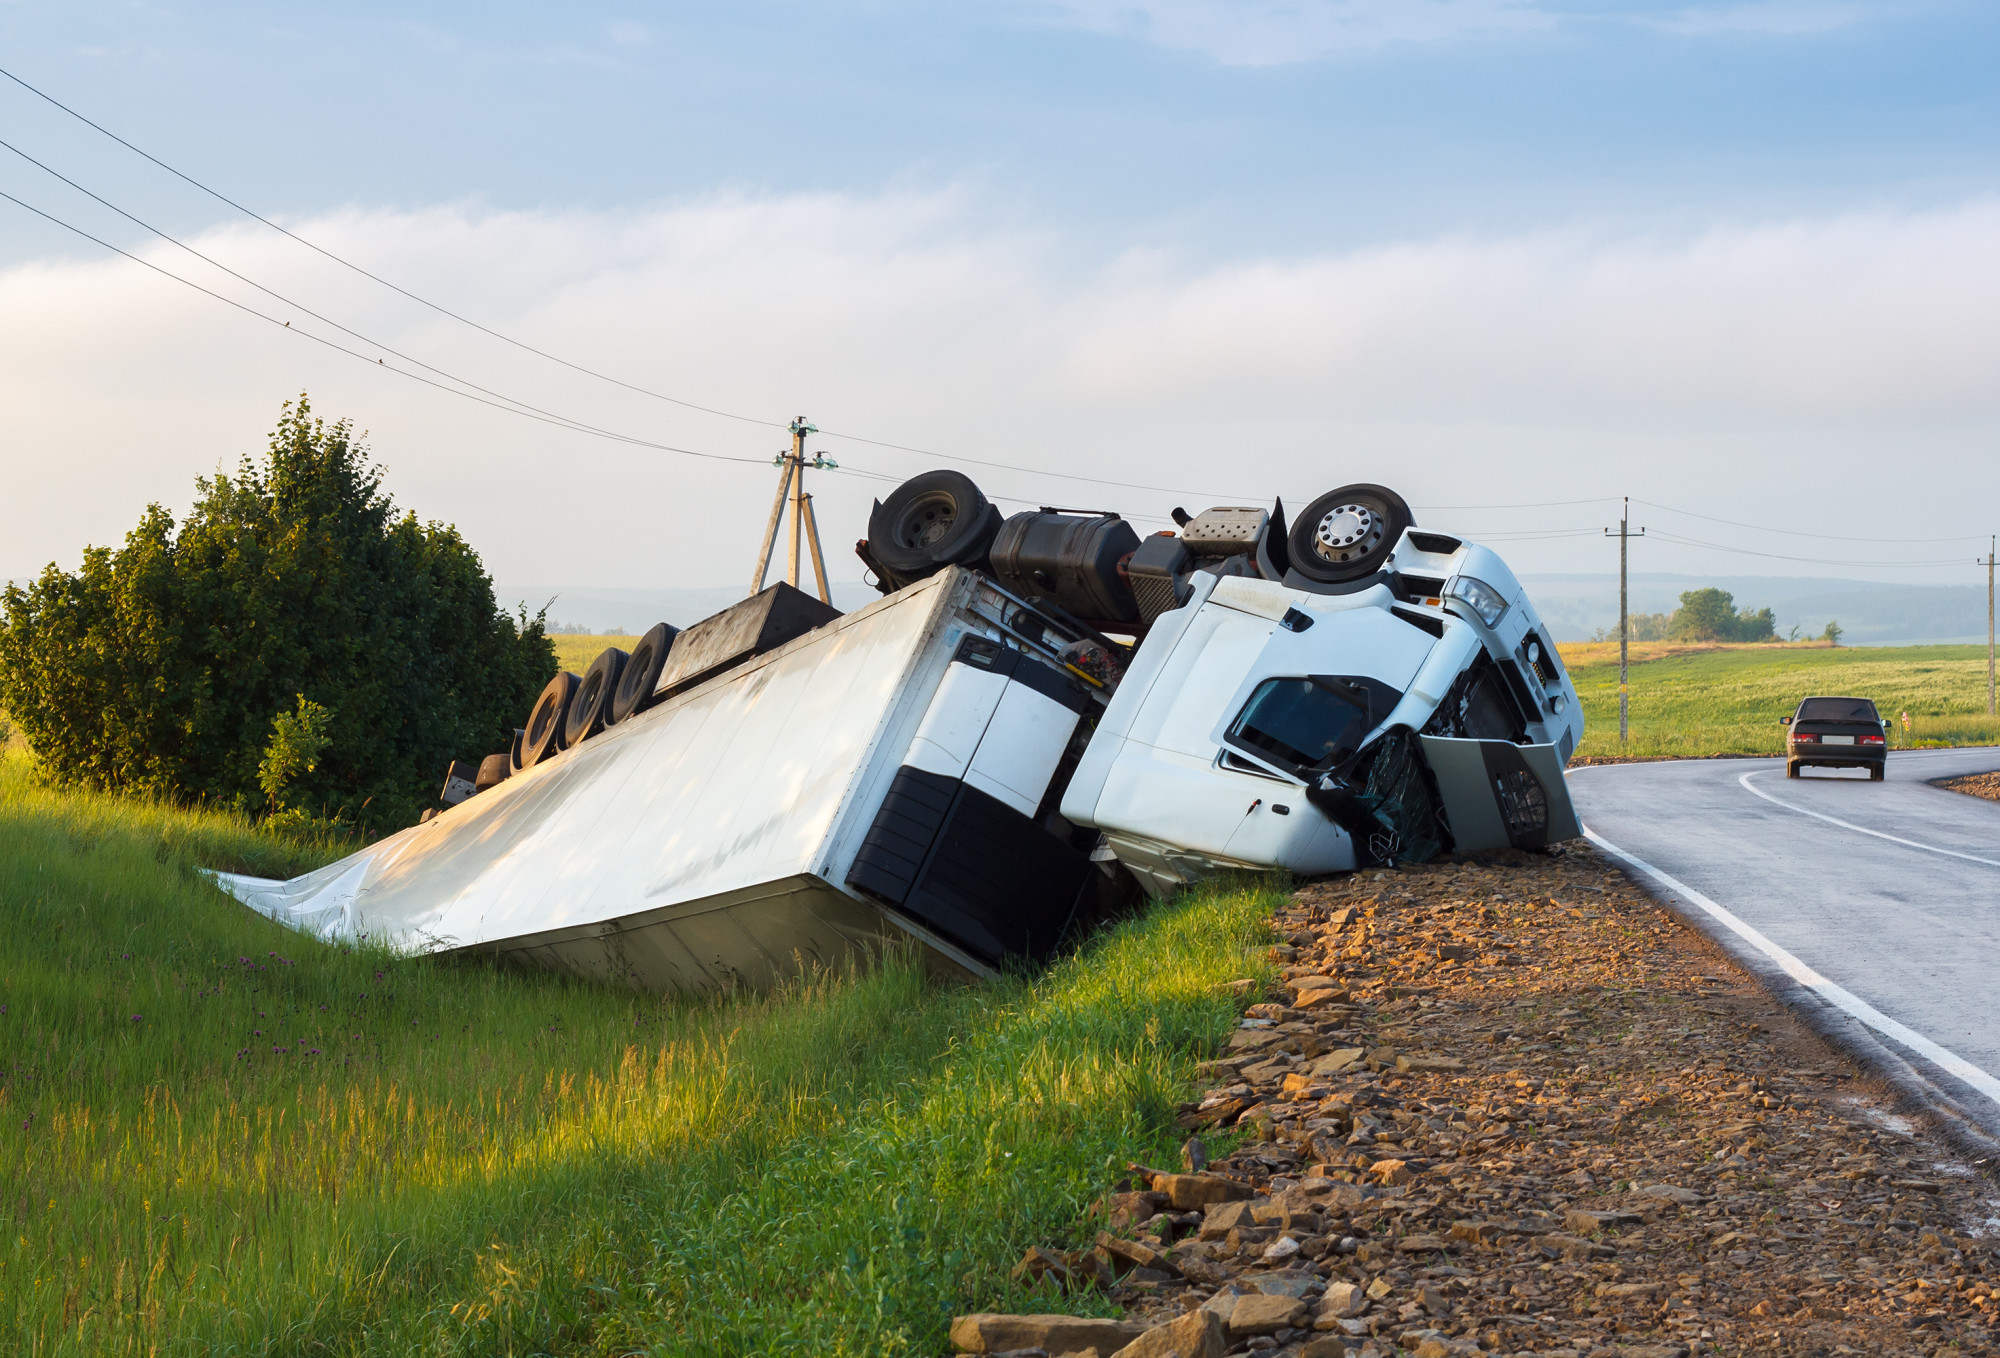 How Are Semi Truck Accidents Different Than Normal Auto Accidents?